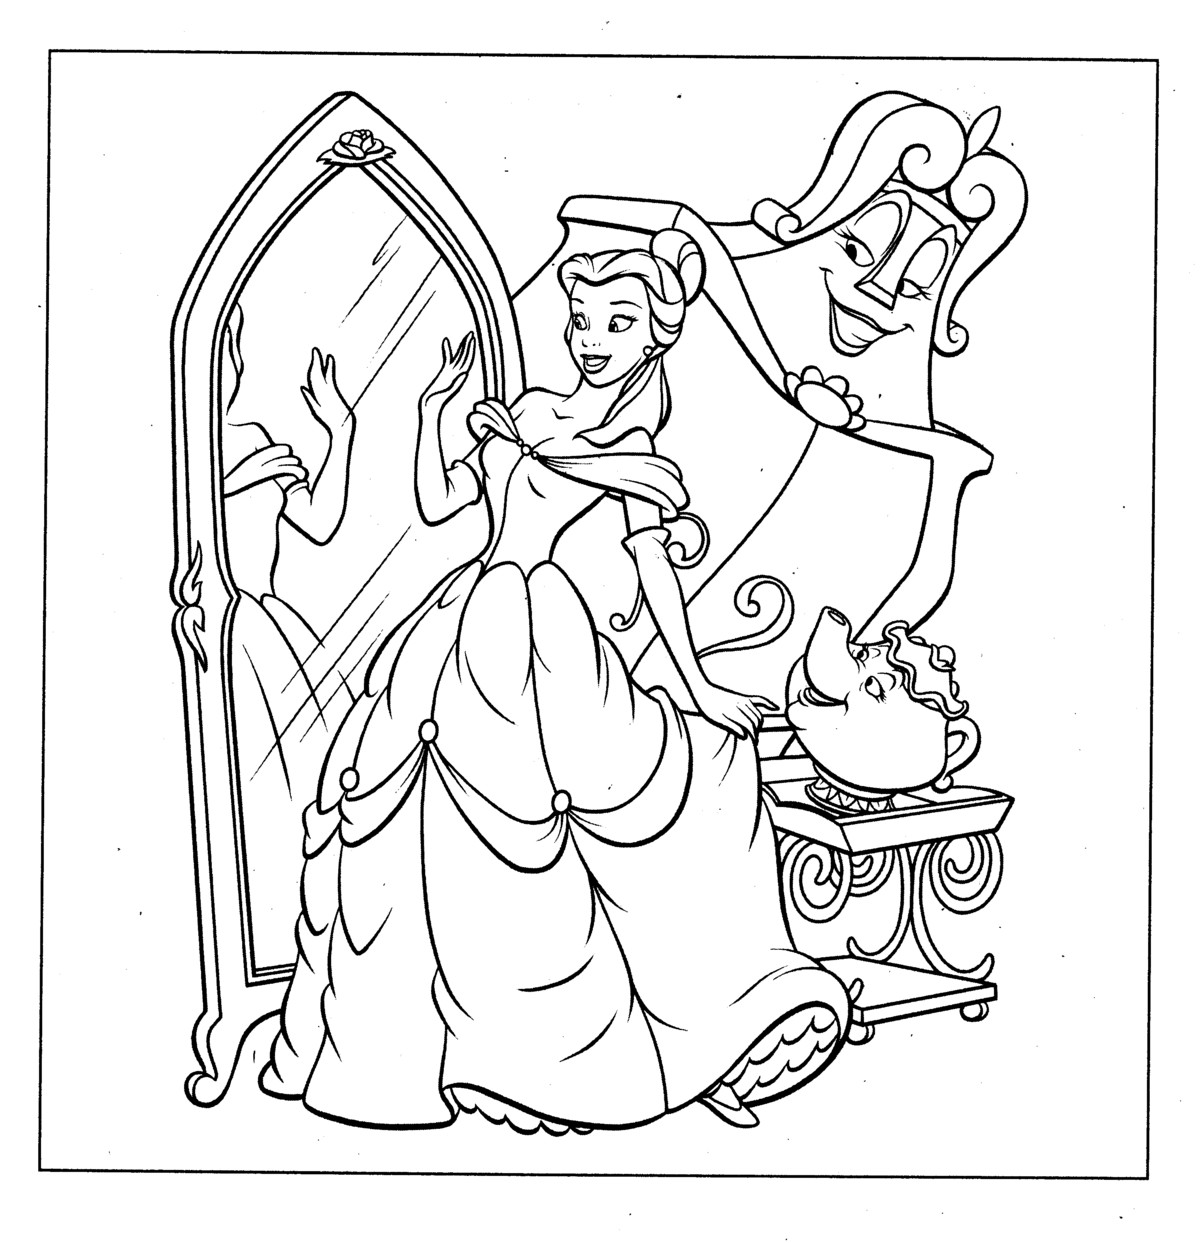 Free coloring pages disney princesses - Disney Princess Color Pages